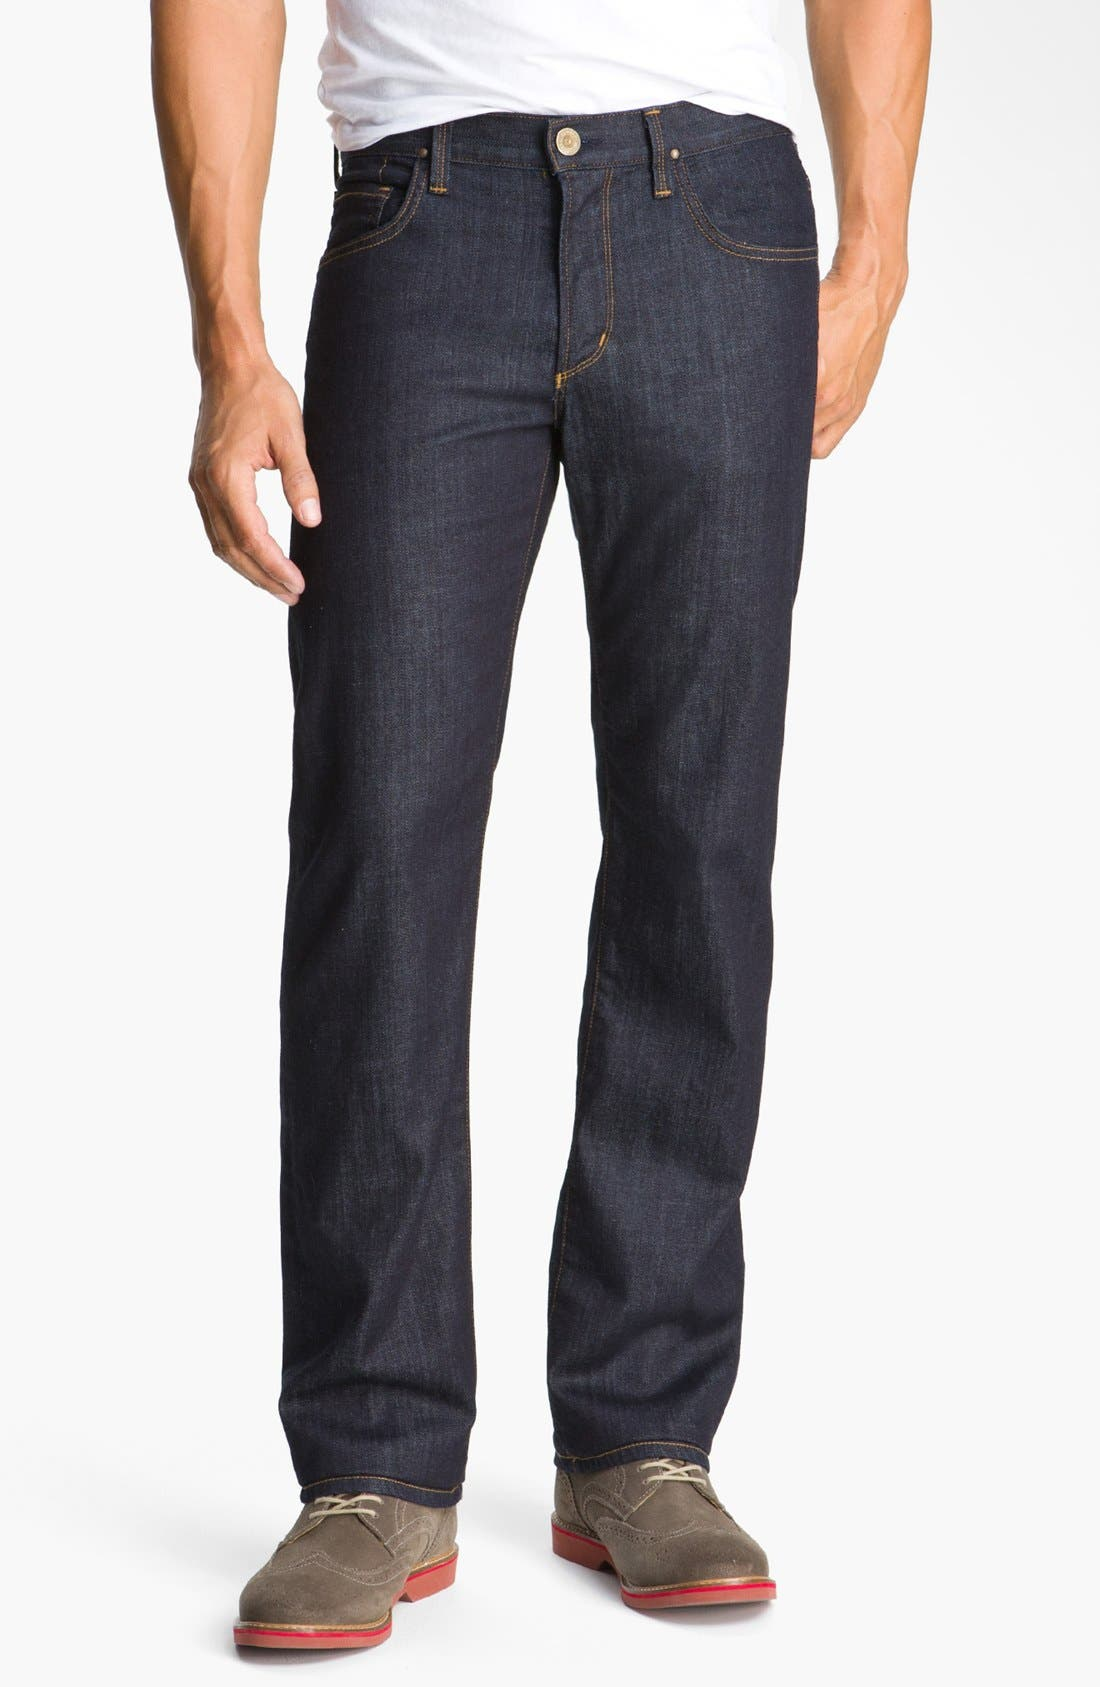 Alternate Image 1 Selected - Citizens of Humanity 'Sid' Straight Leg Jeans (Ultimate) (Tall)